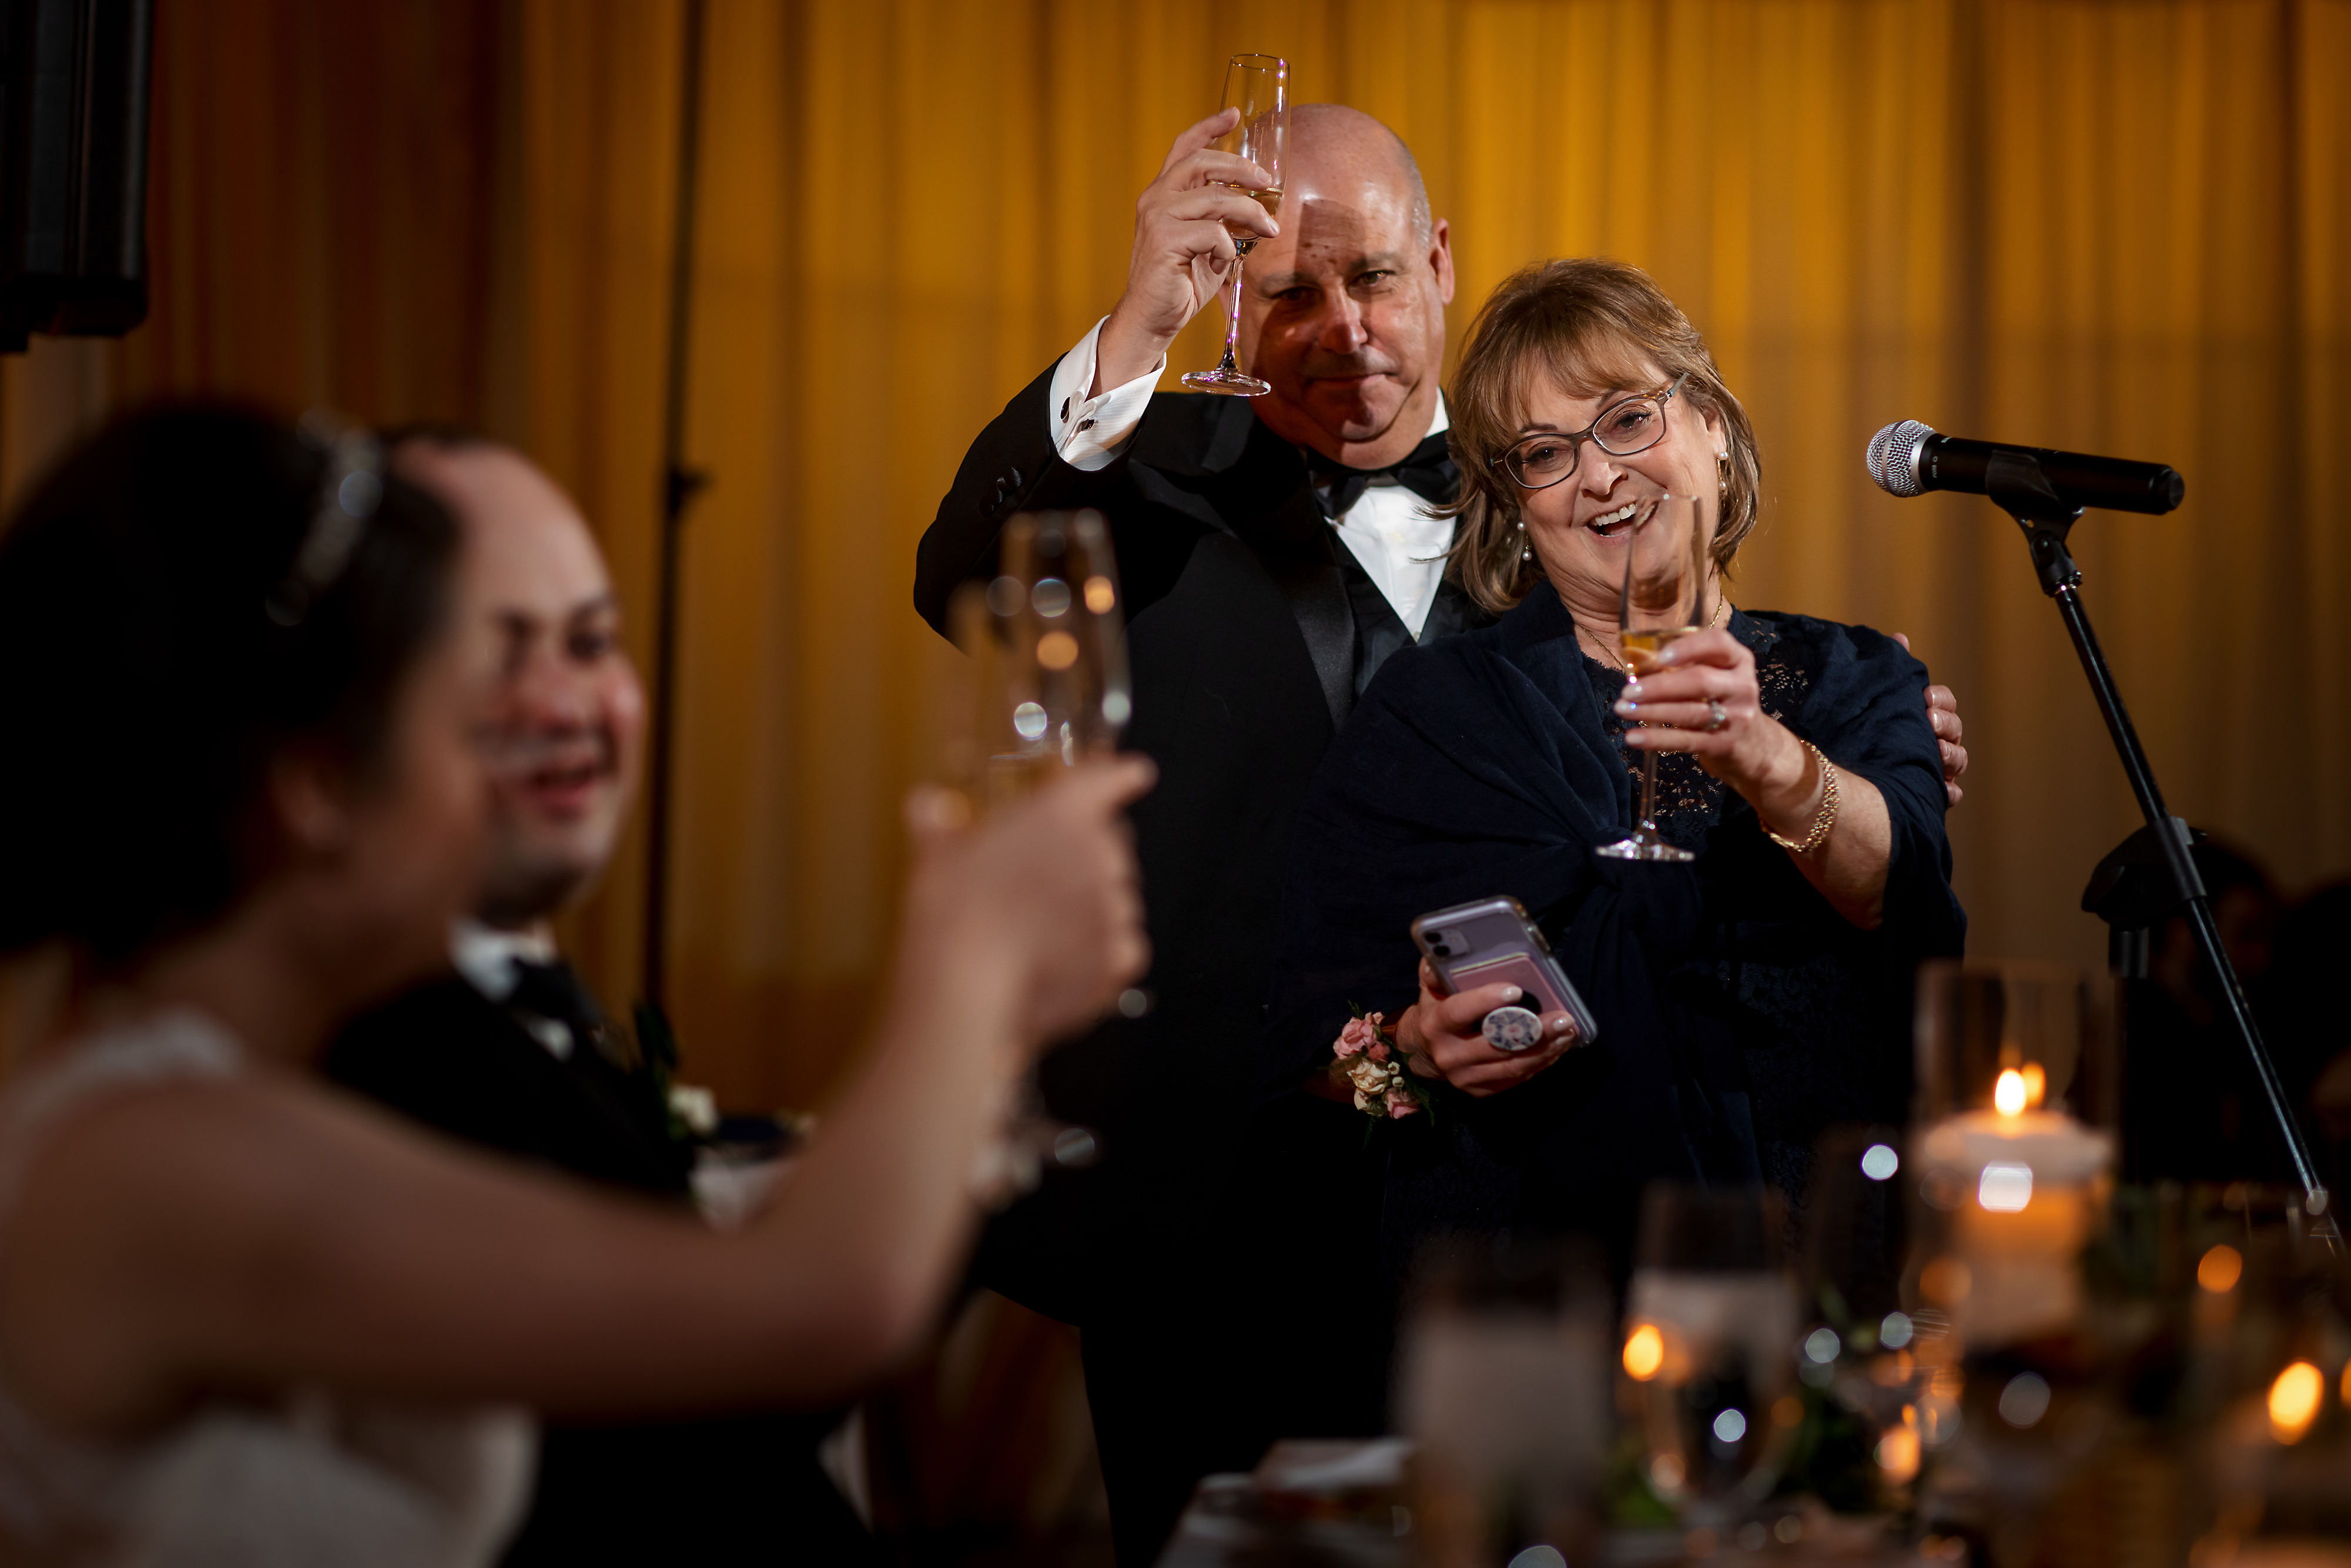 Parents of the groom give toast during wedding reception at the Rookery Building in Chicago